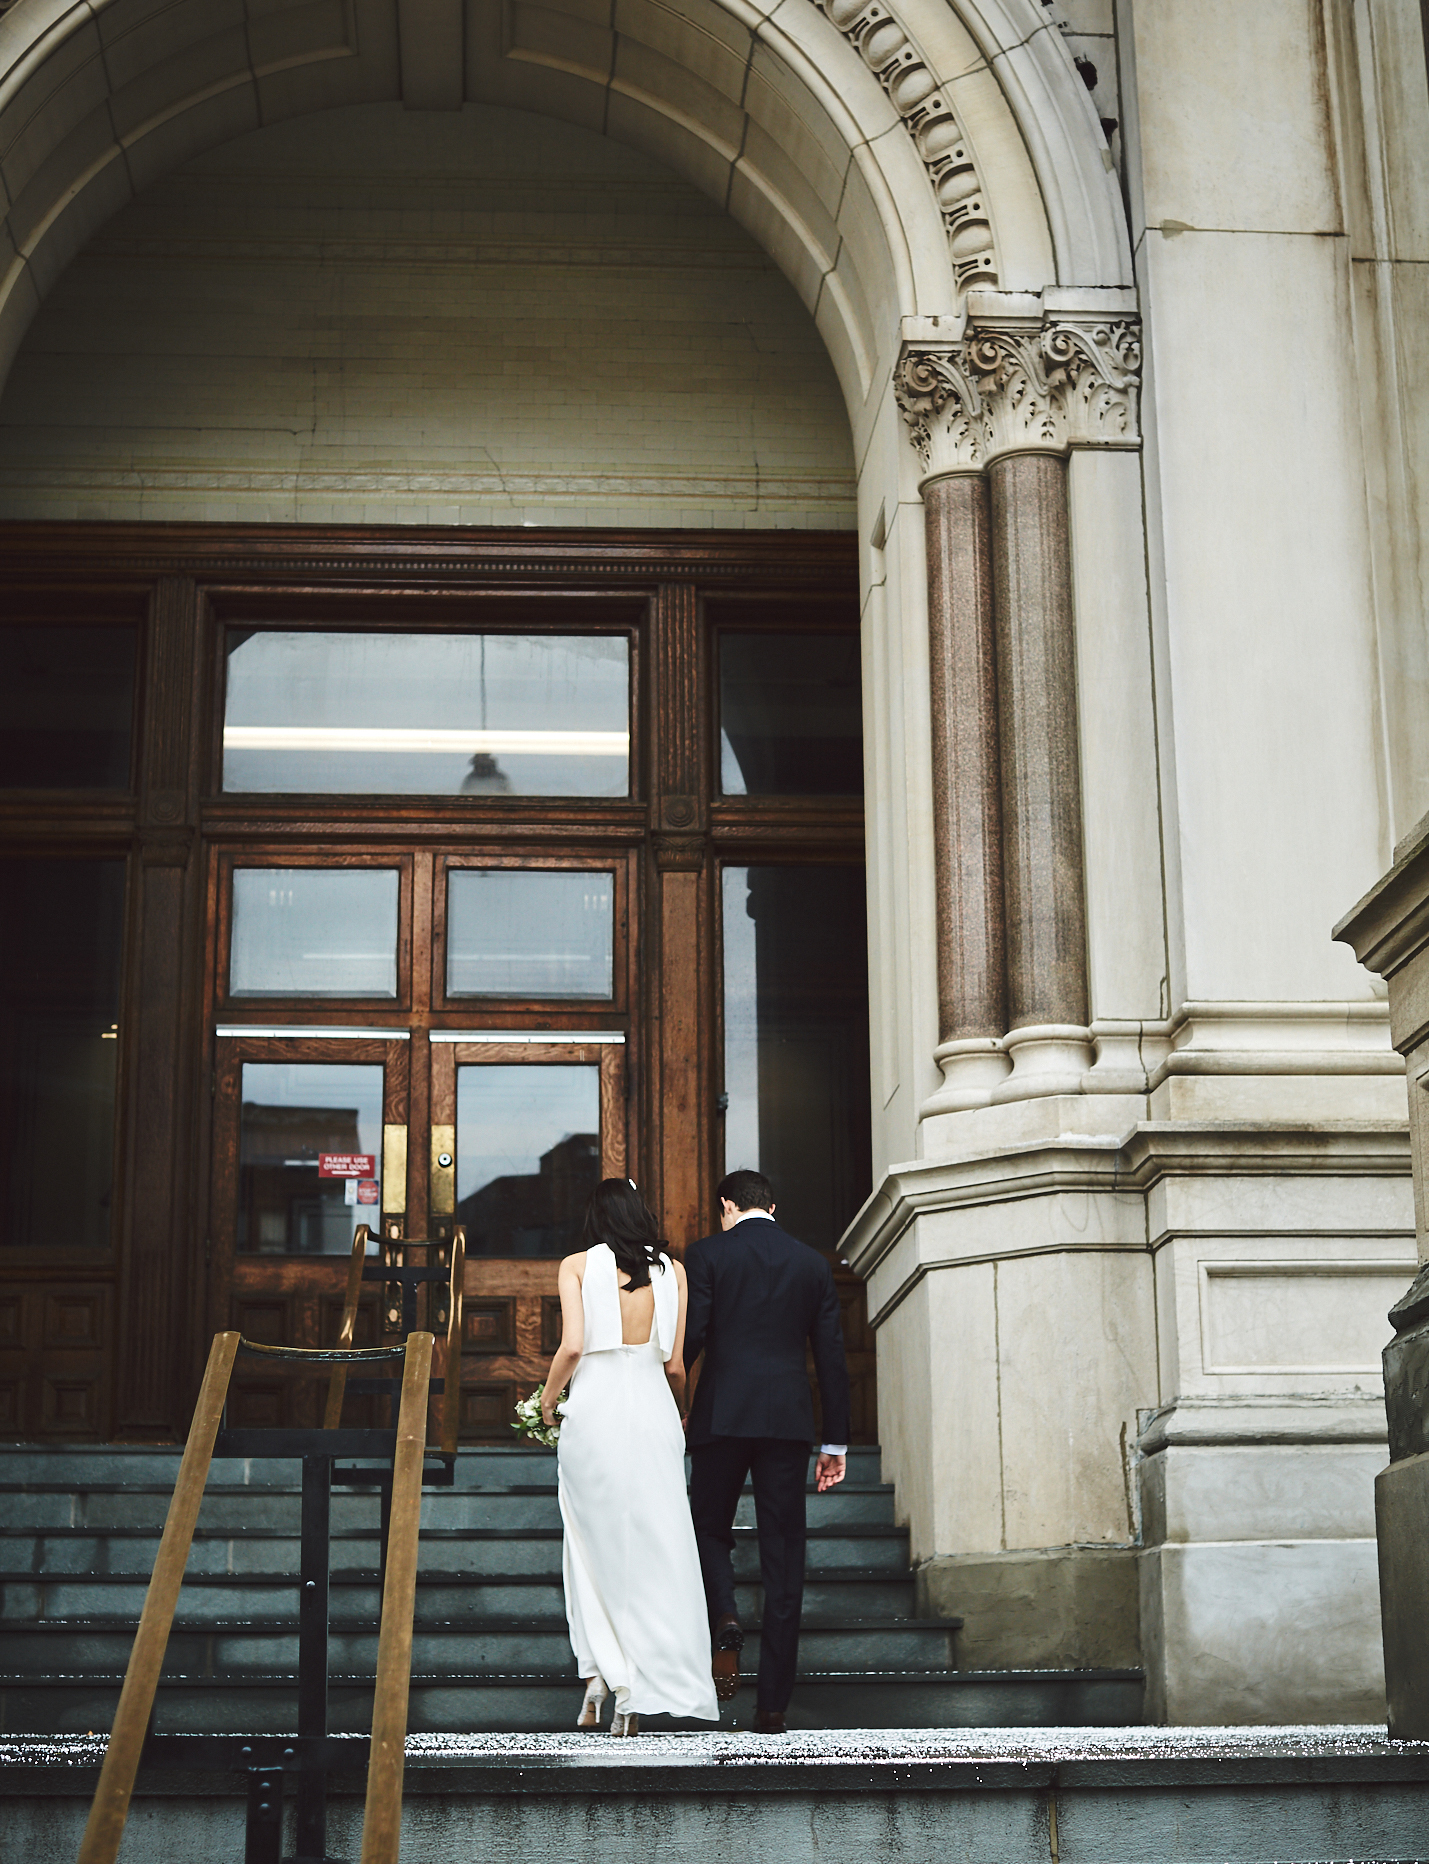 181116_JerseyCityCityHallFallWeddingPhotography_JerseyCityWeddingPhotographer_By_BriJohnsonWeddings_0054.jpg